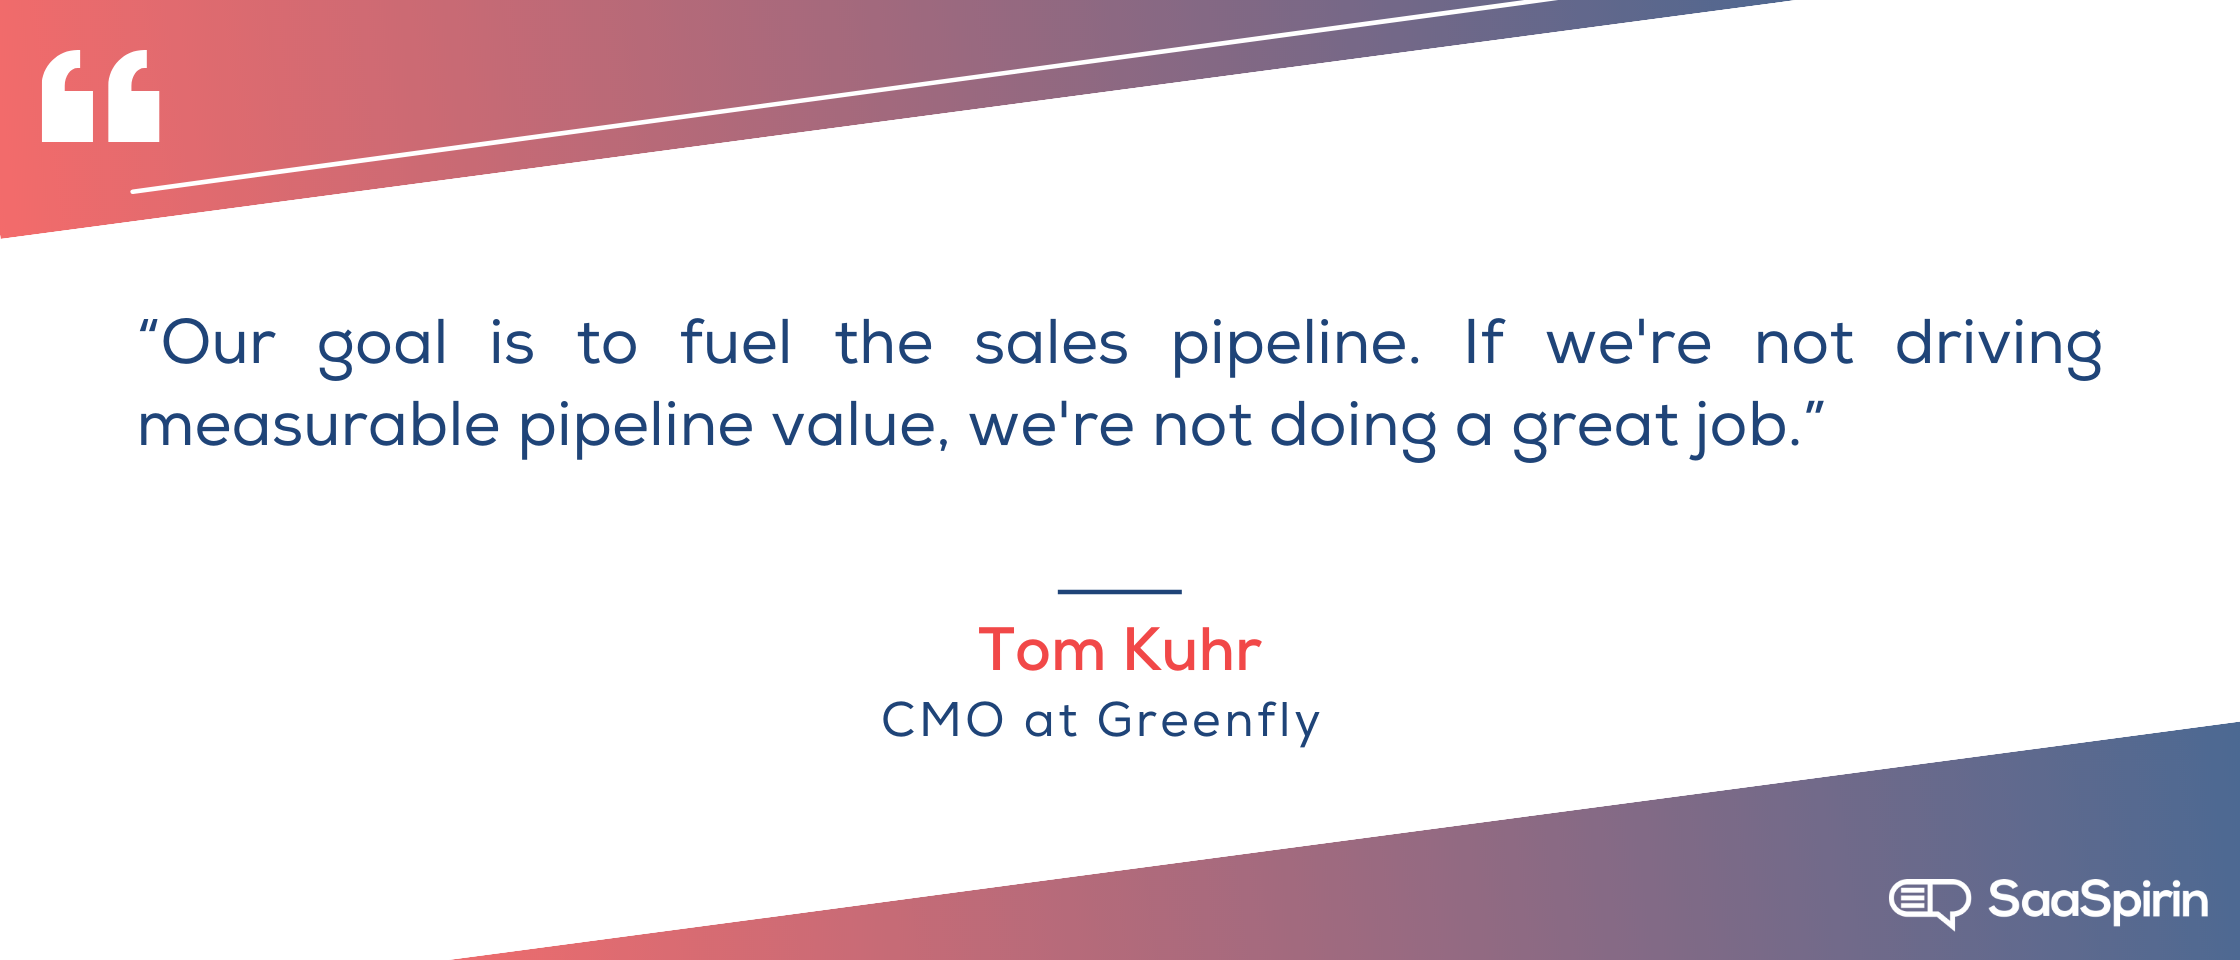 Our-goal-is-to-fuel-the-sales-pipeline-If-were-not-driving-measurable-pipeline-value-were- not-doing-a-great-job.png